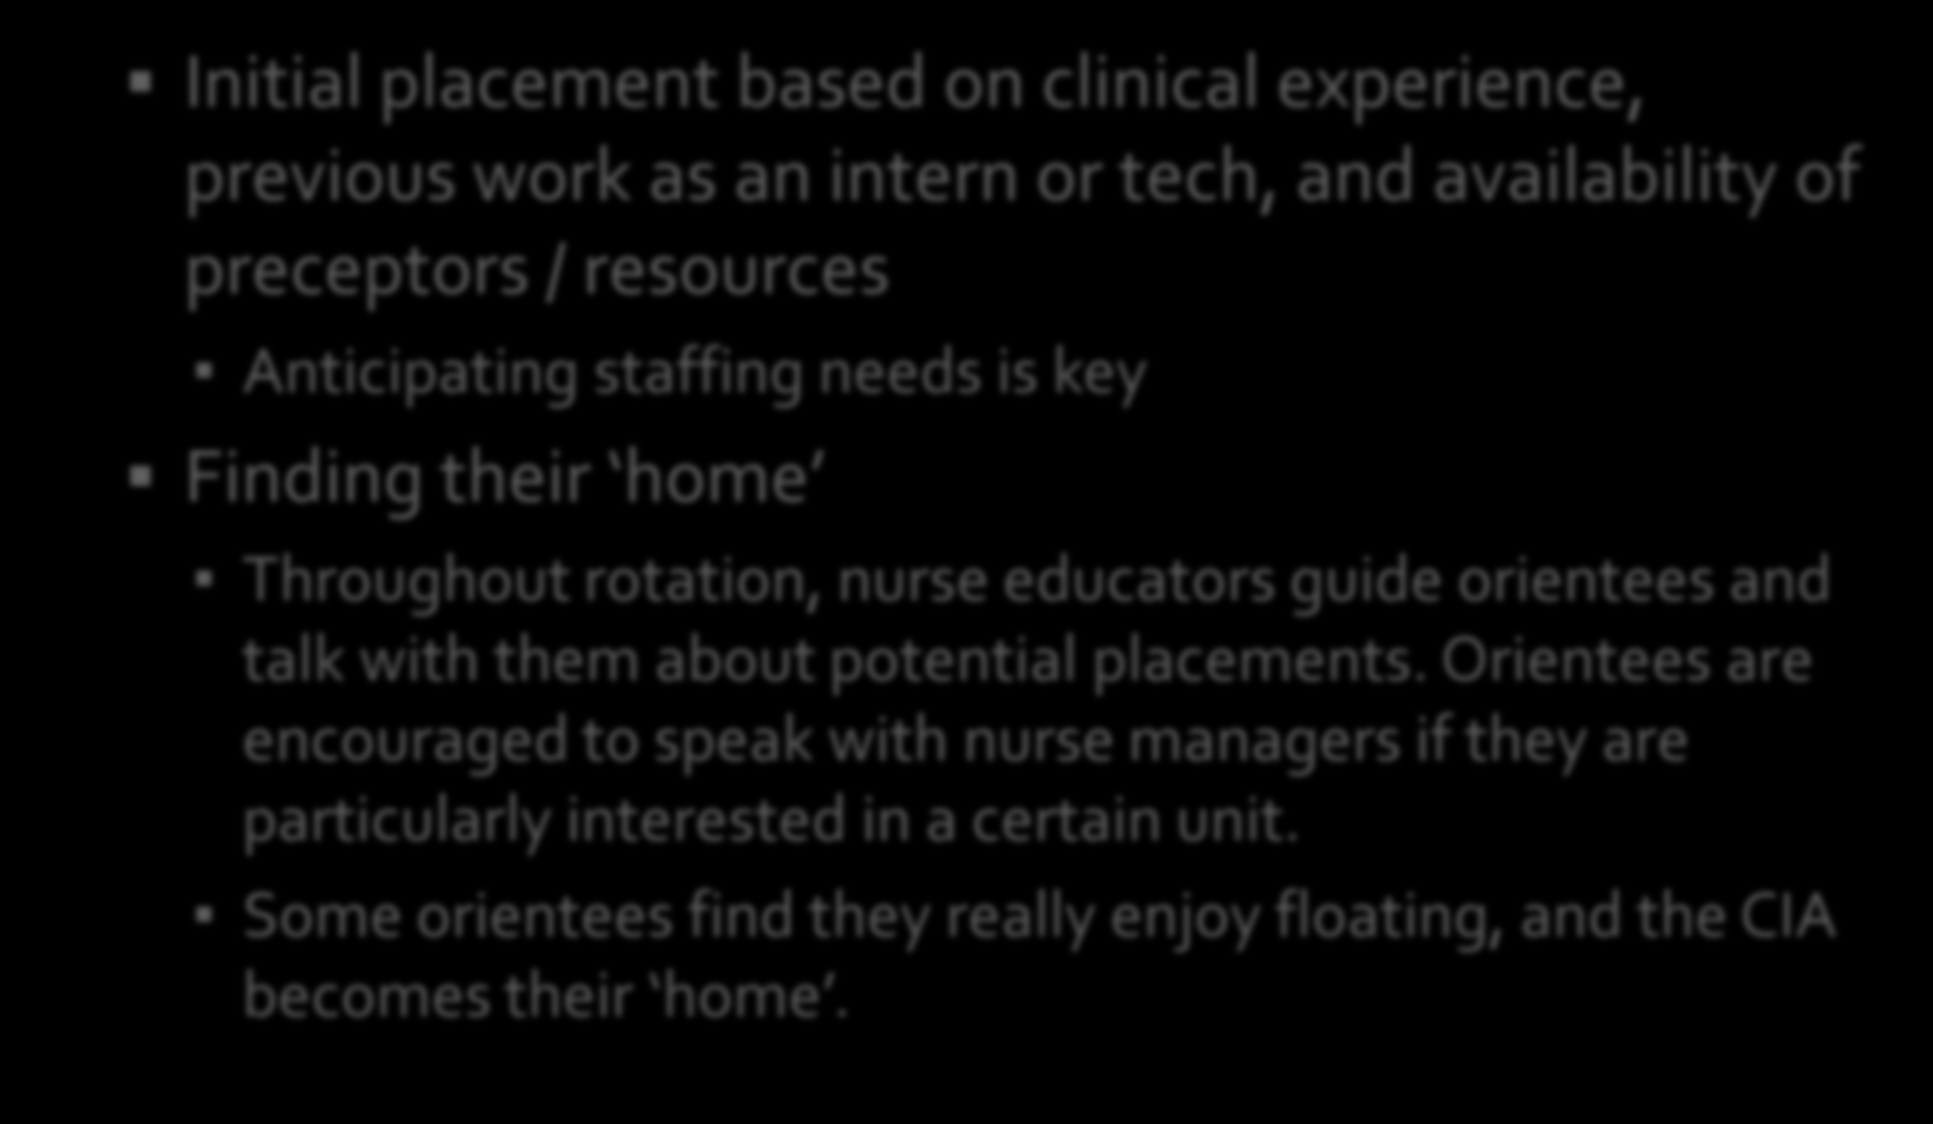 Initial placement based on clinical experience, previous work as an intern or tech, and availability of preceptors / resources Anticipating staffing needs is key Finding their home Throughout